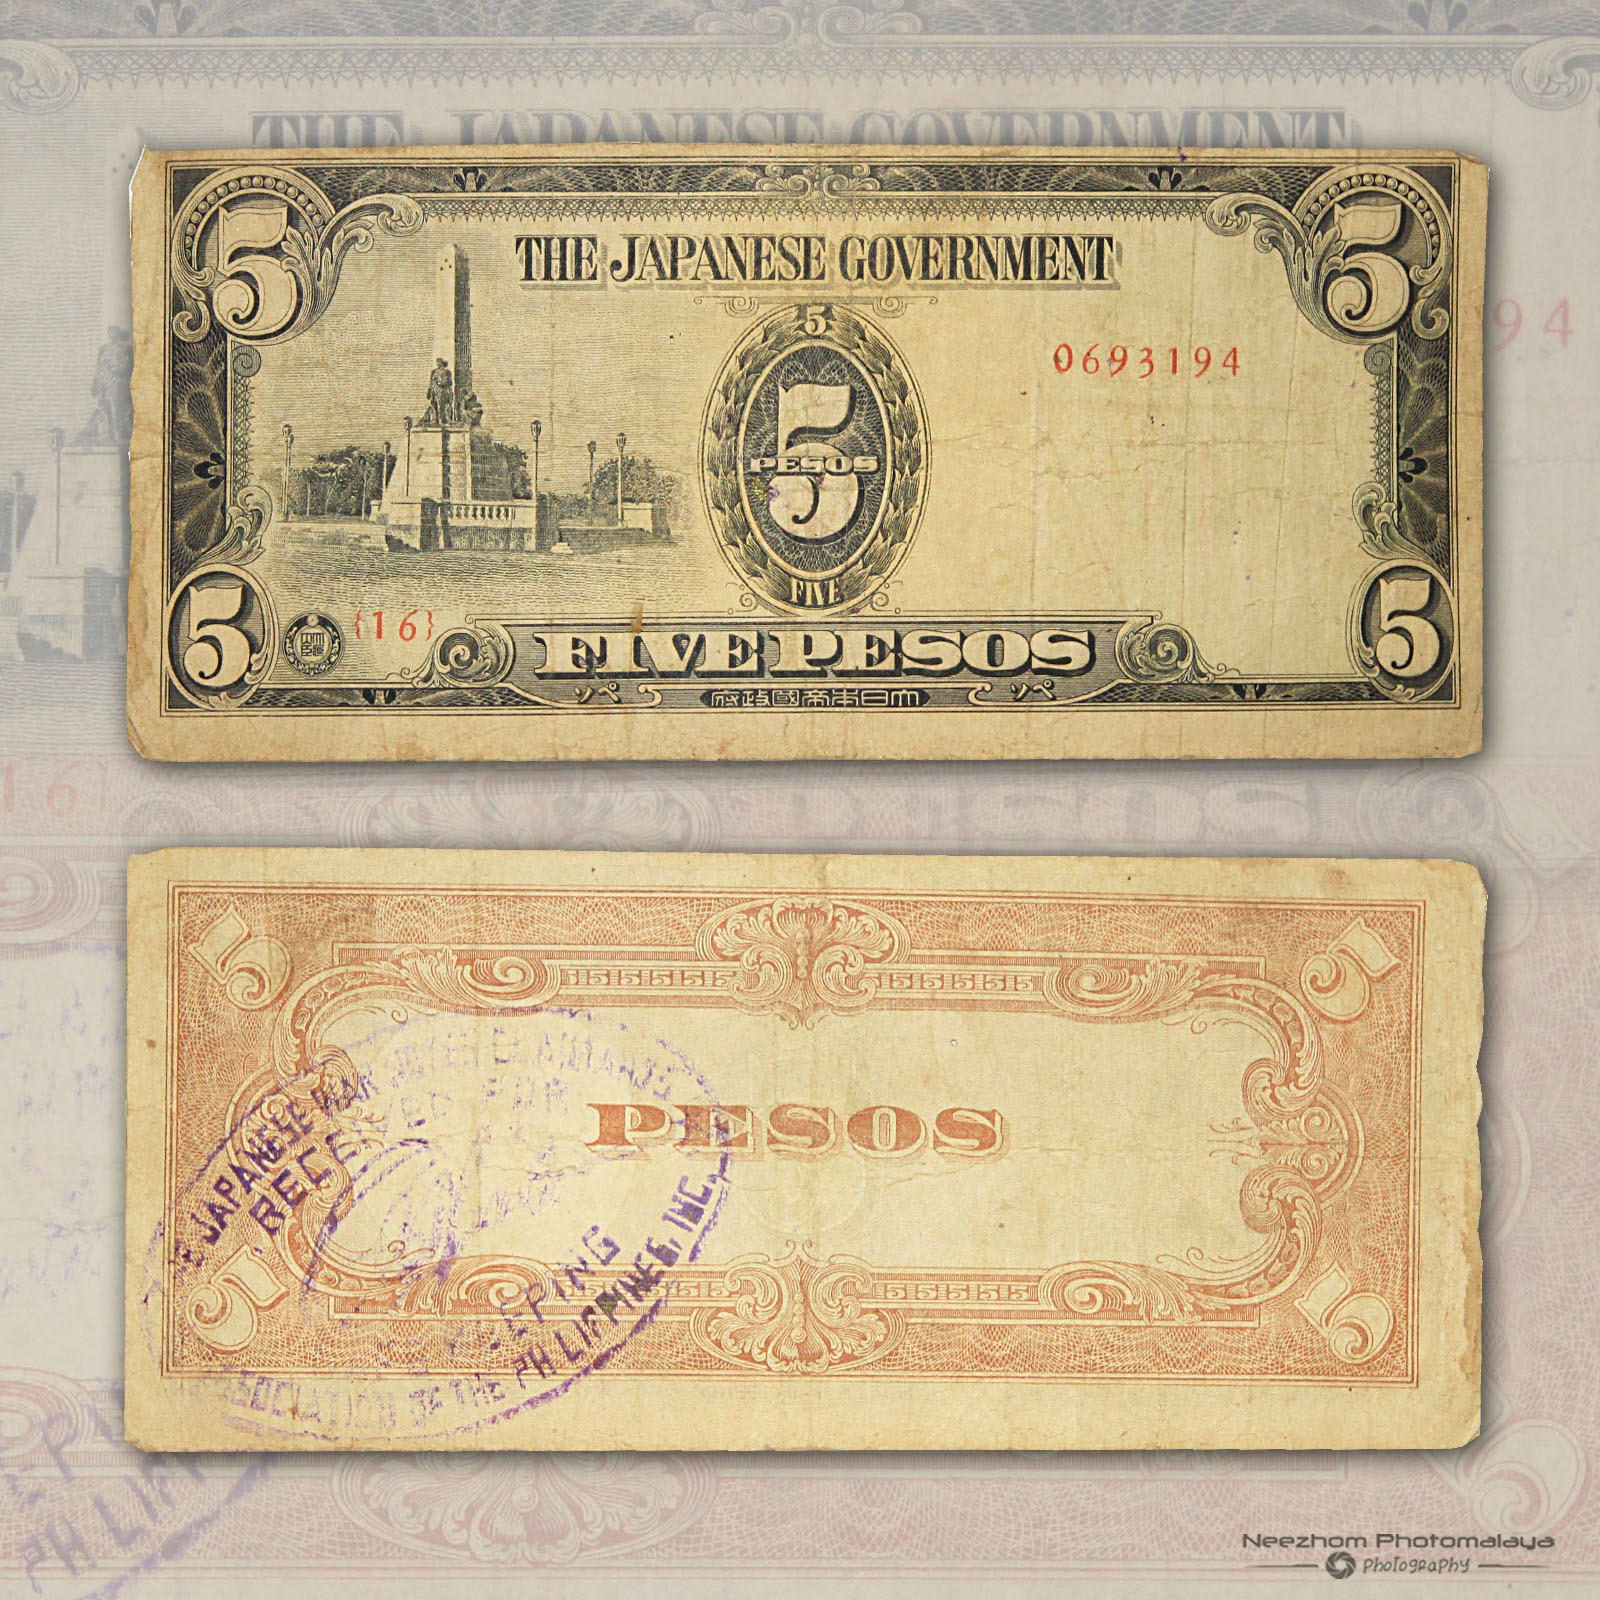 5 Pesos Philippine 1943 Japanese Occupation